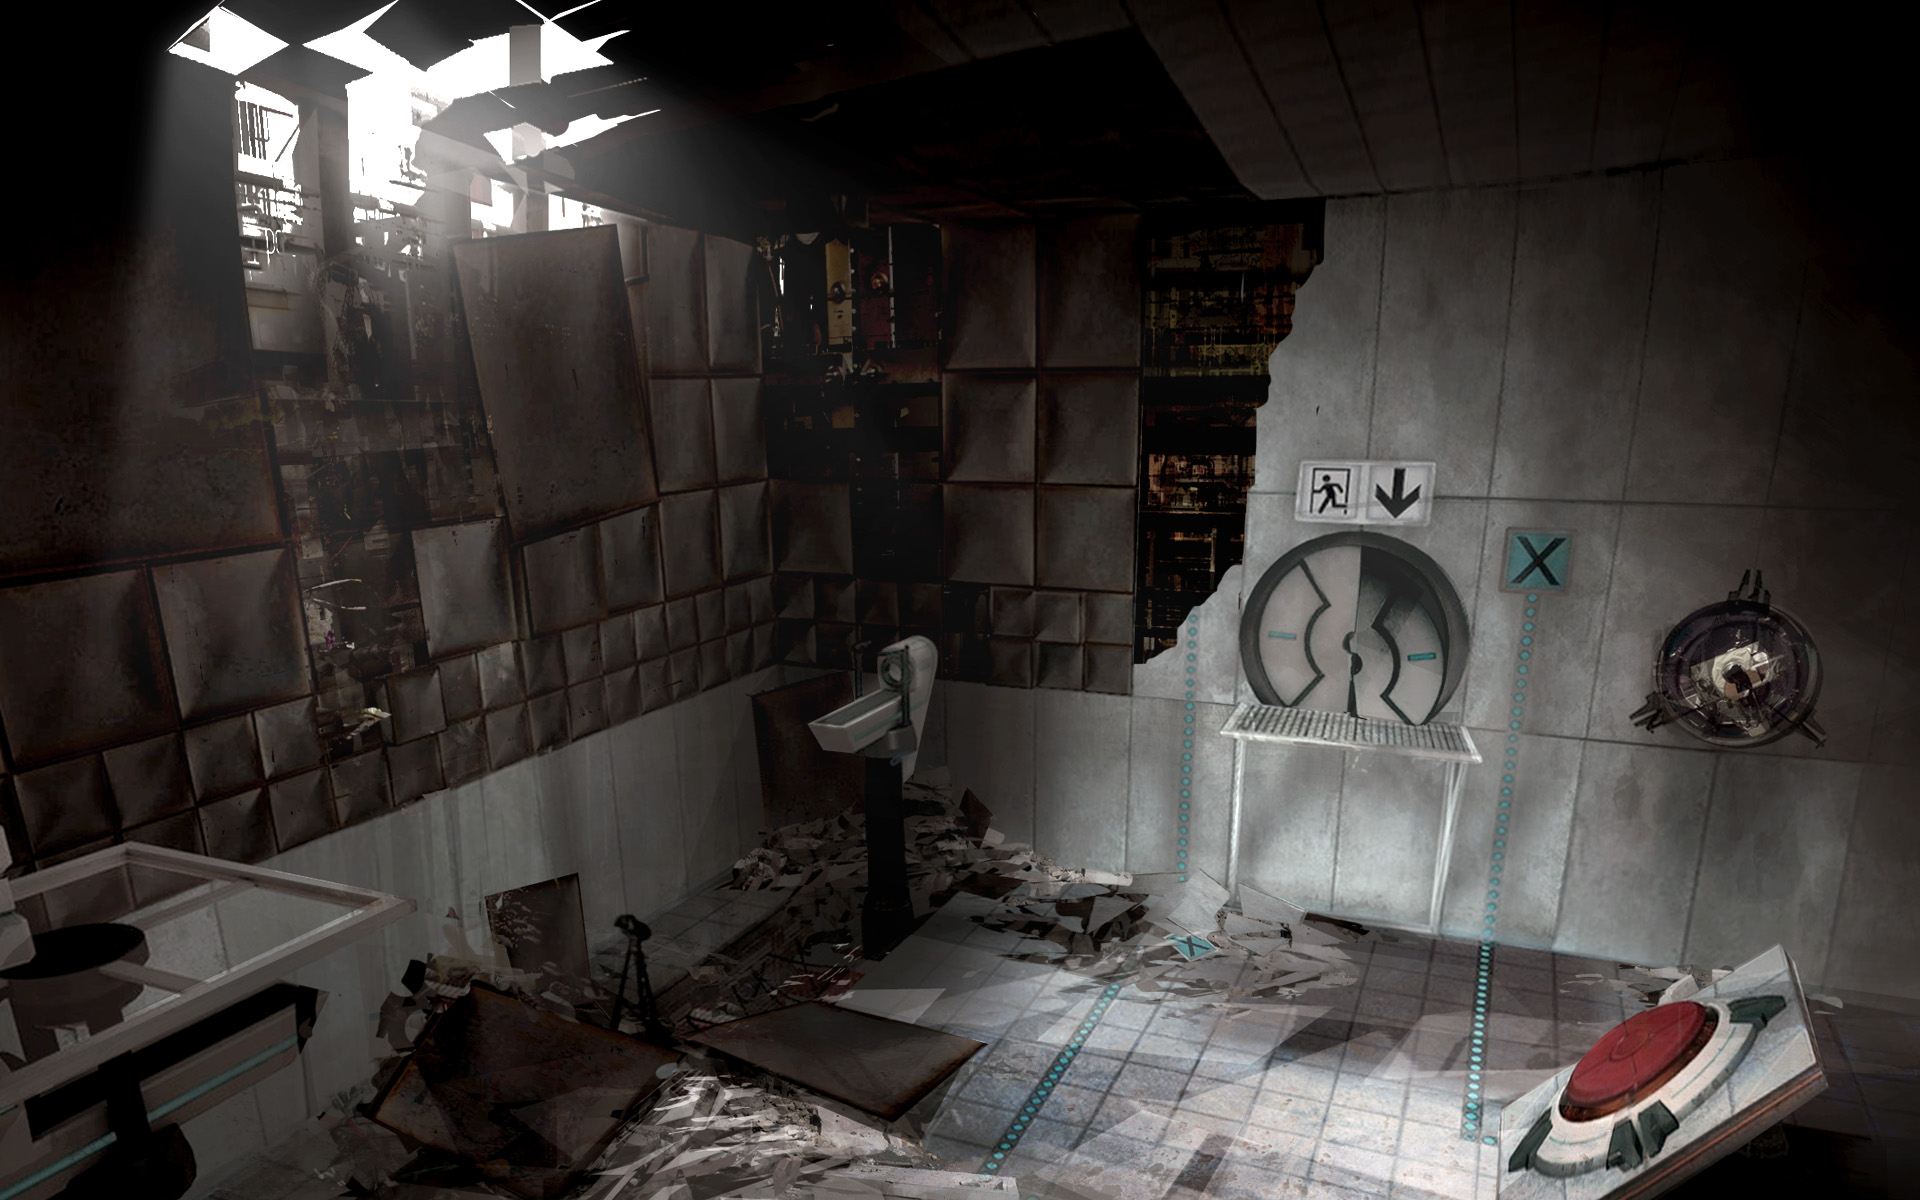 http://elder-geek.com/wp-content/uploads/2010/06/portal2_wallpaper.jpg